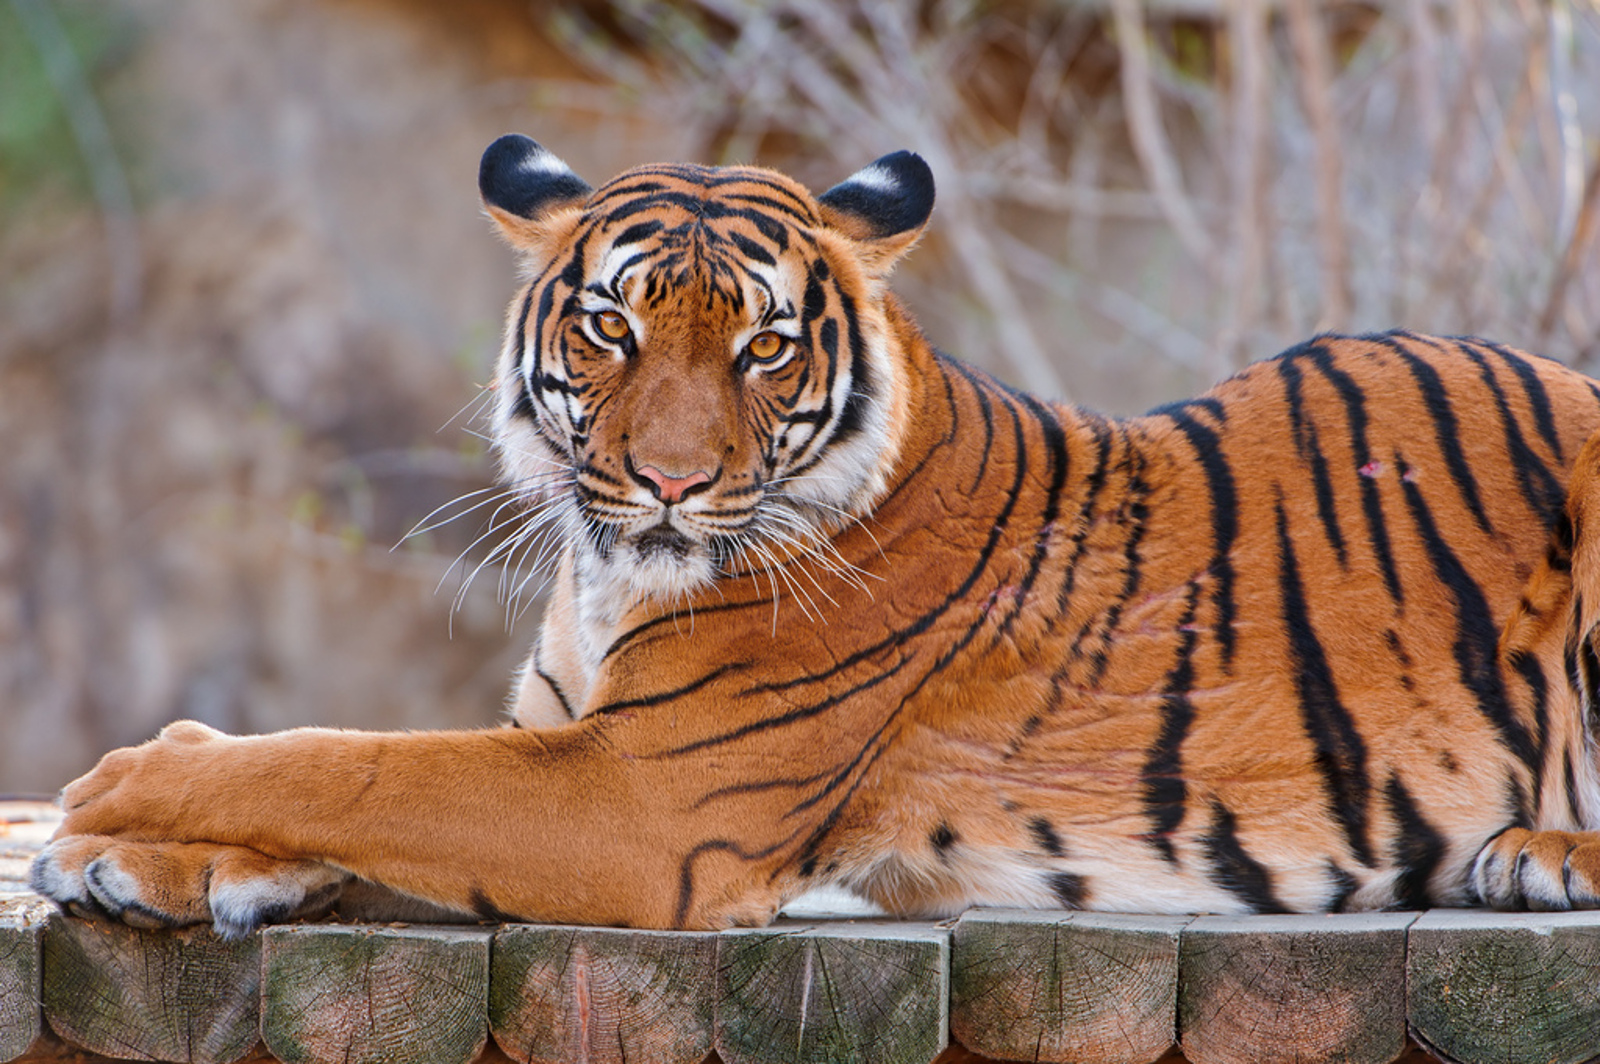 Captive-Bred Animals Are Just Not That Into Their Wild Counterparts: What This Means For Species Resurgence